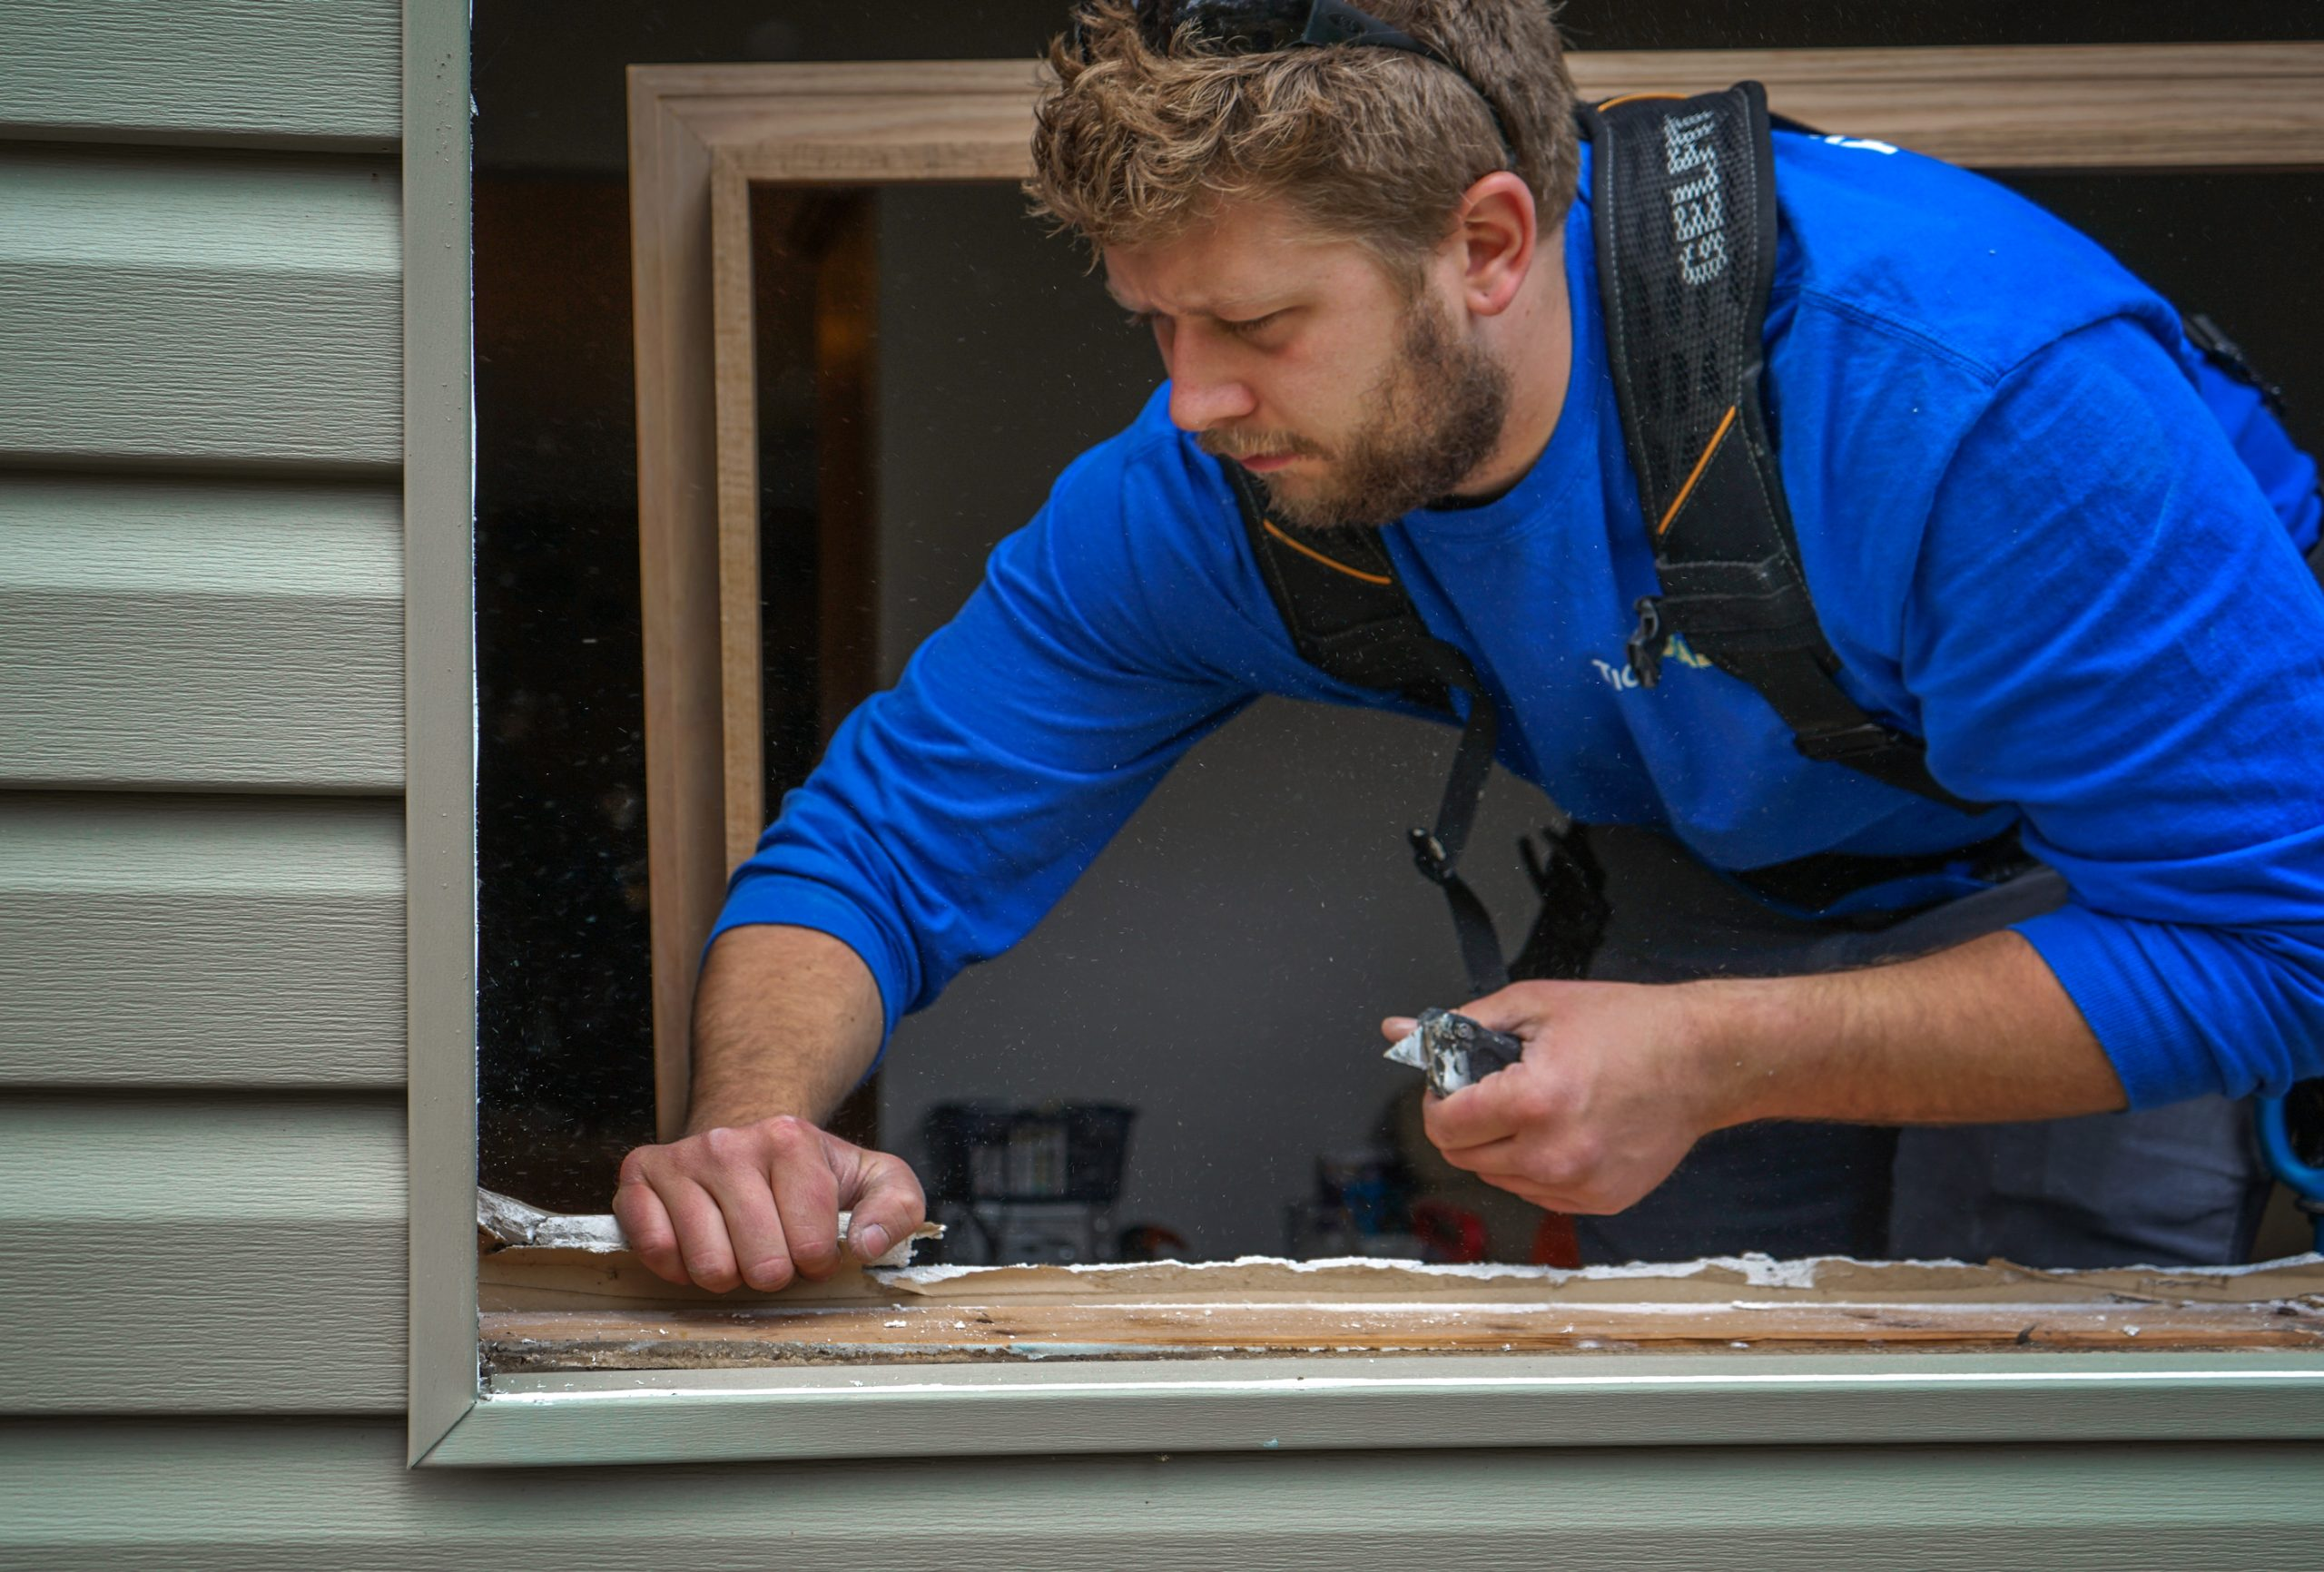 TightSeal is a window replacement company and home remodeling contractor in New Berlin, WI